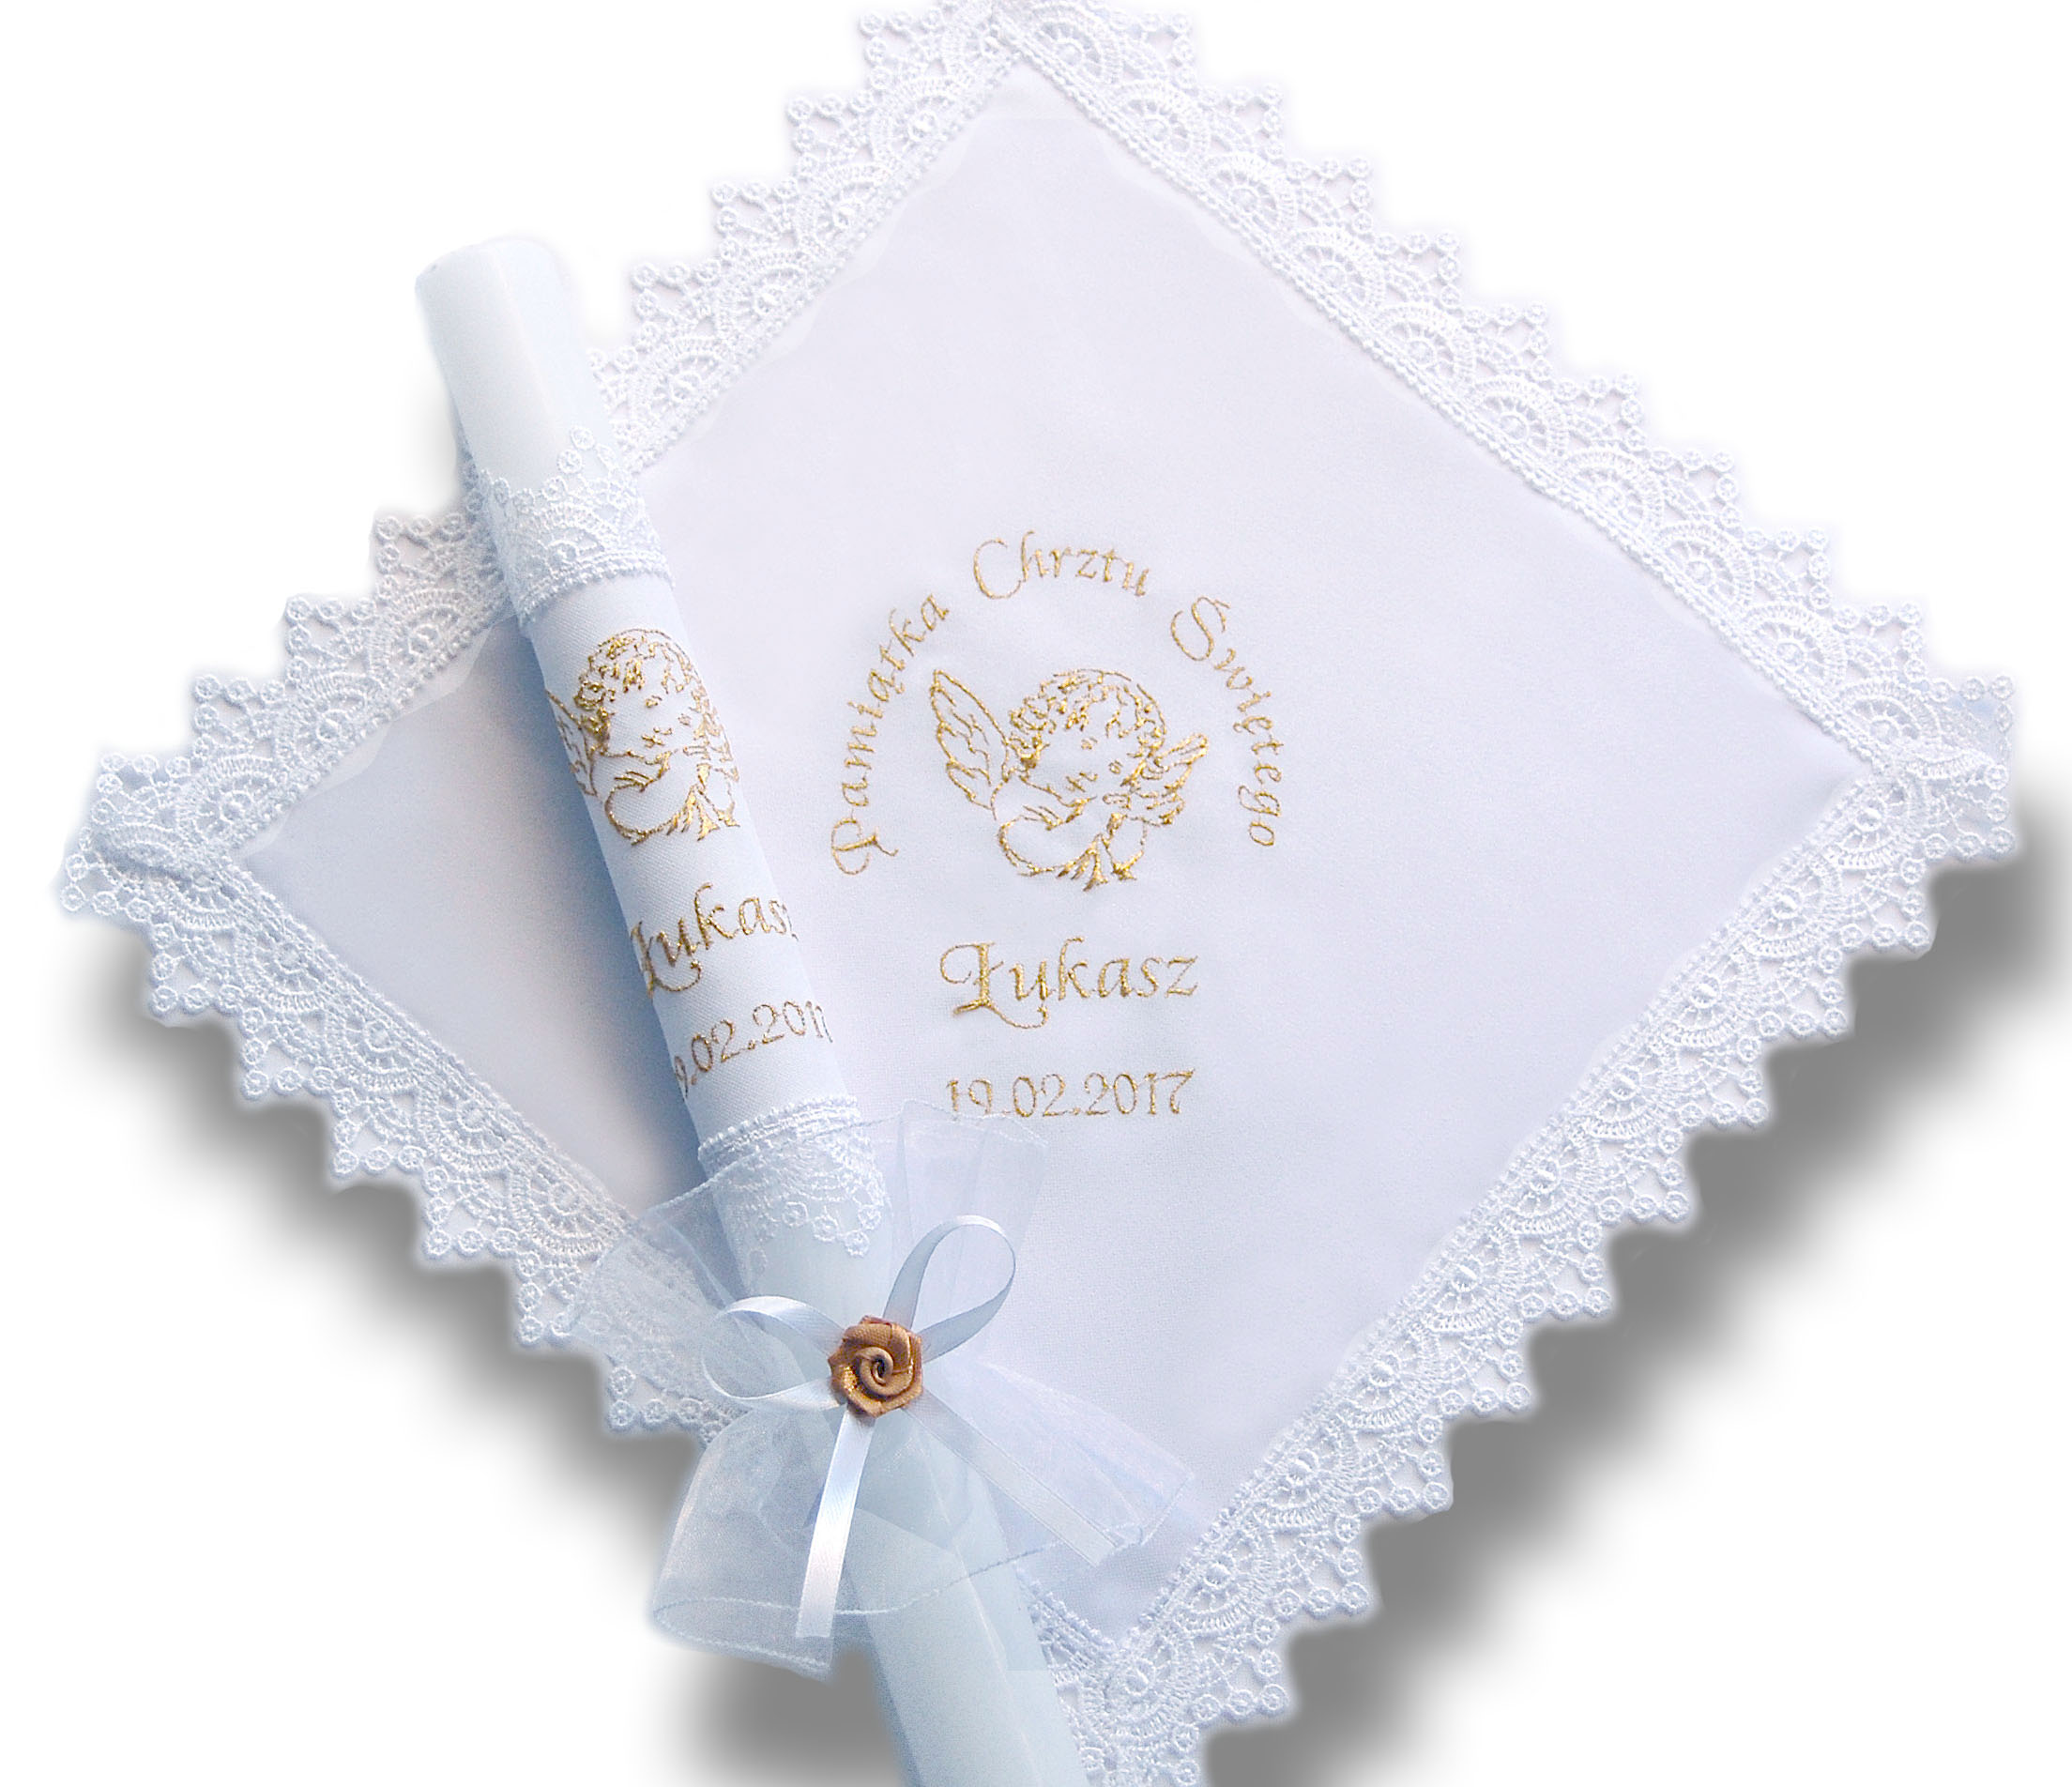 Item SZATKA and CANDLE FOR BAPTISM embroidery, name+date